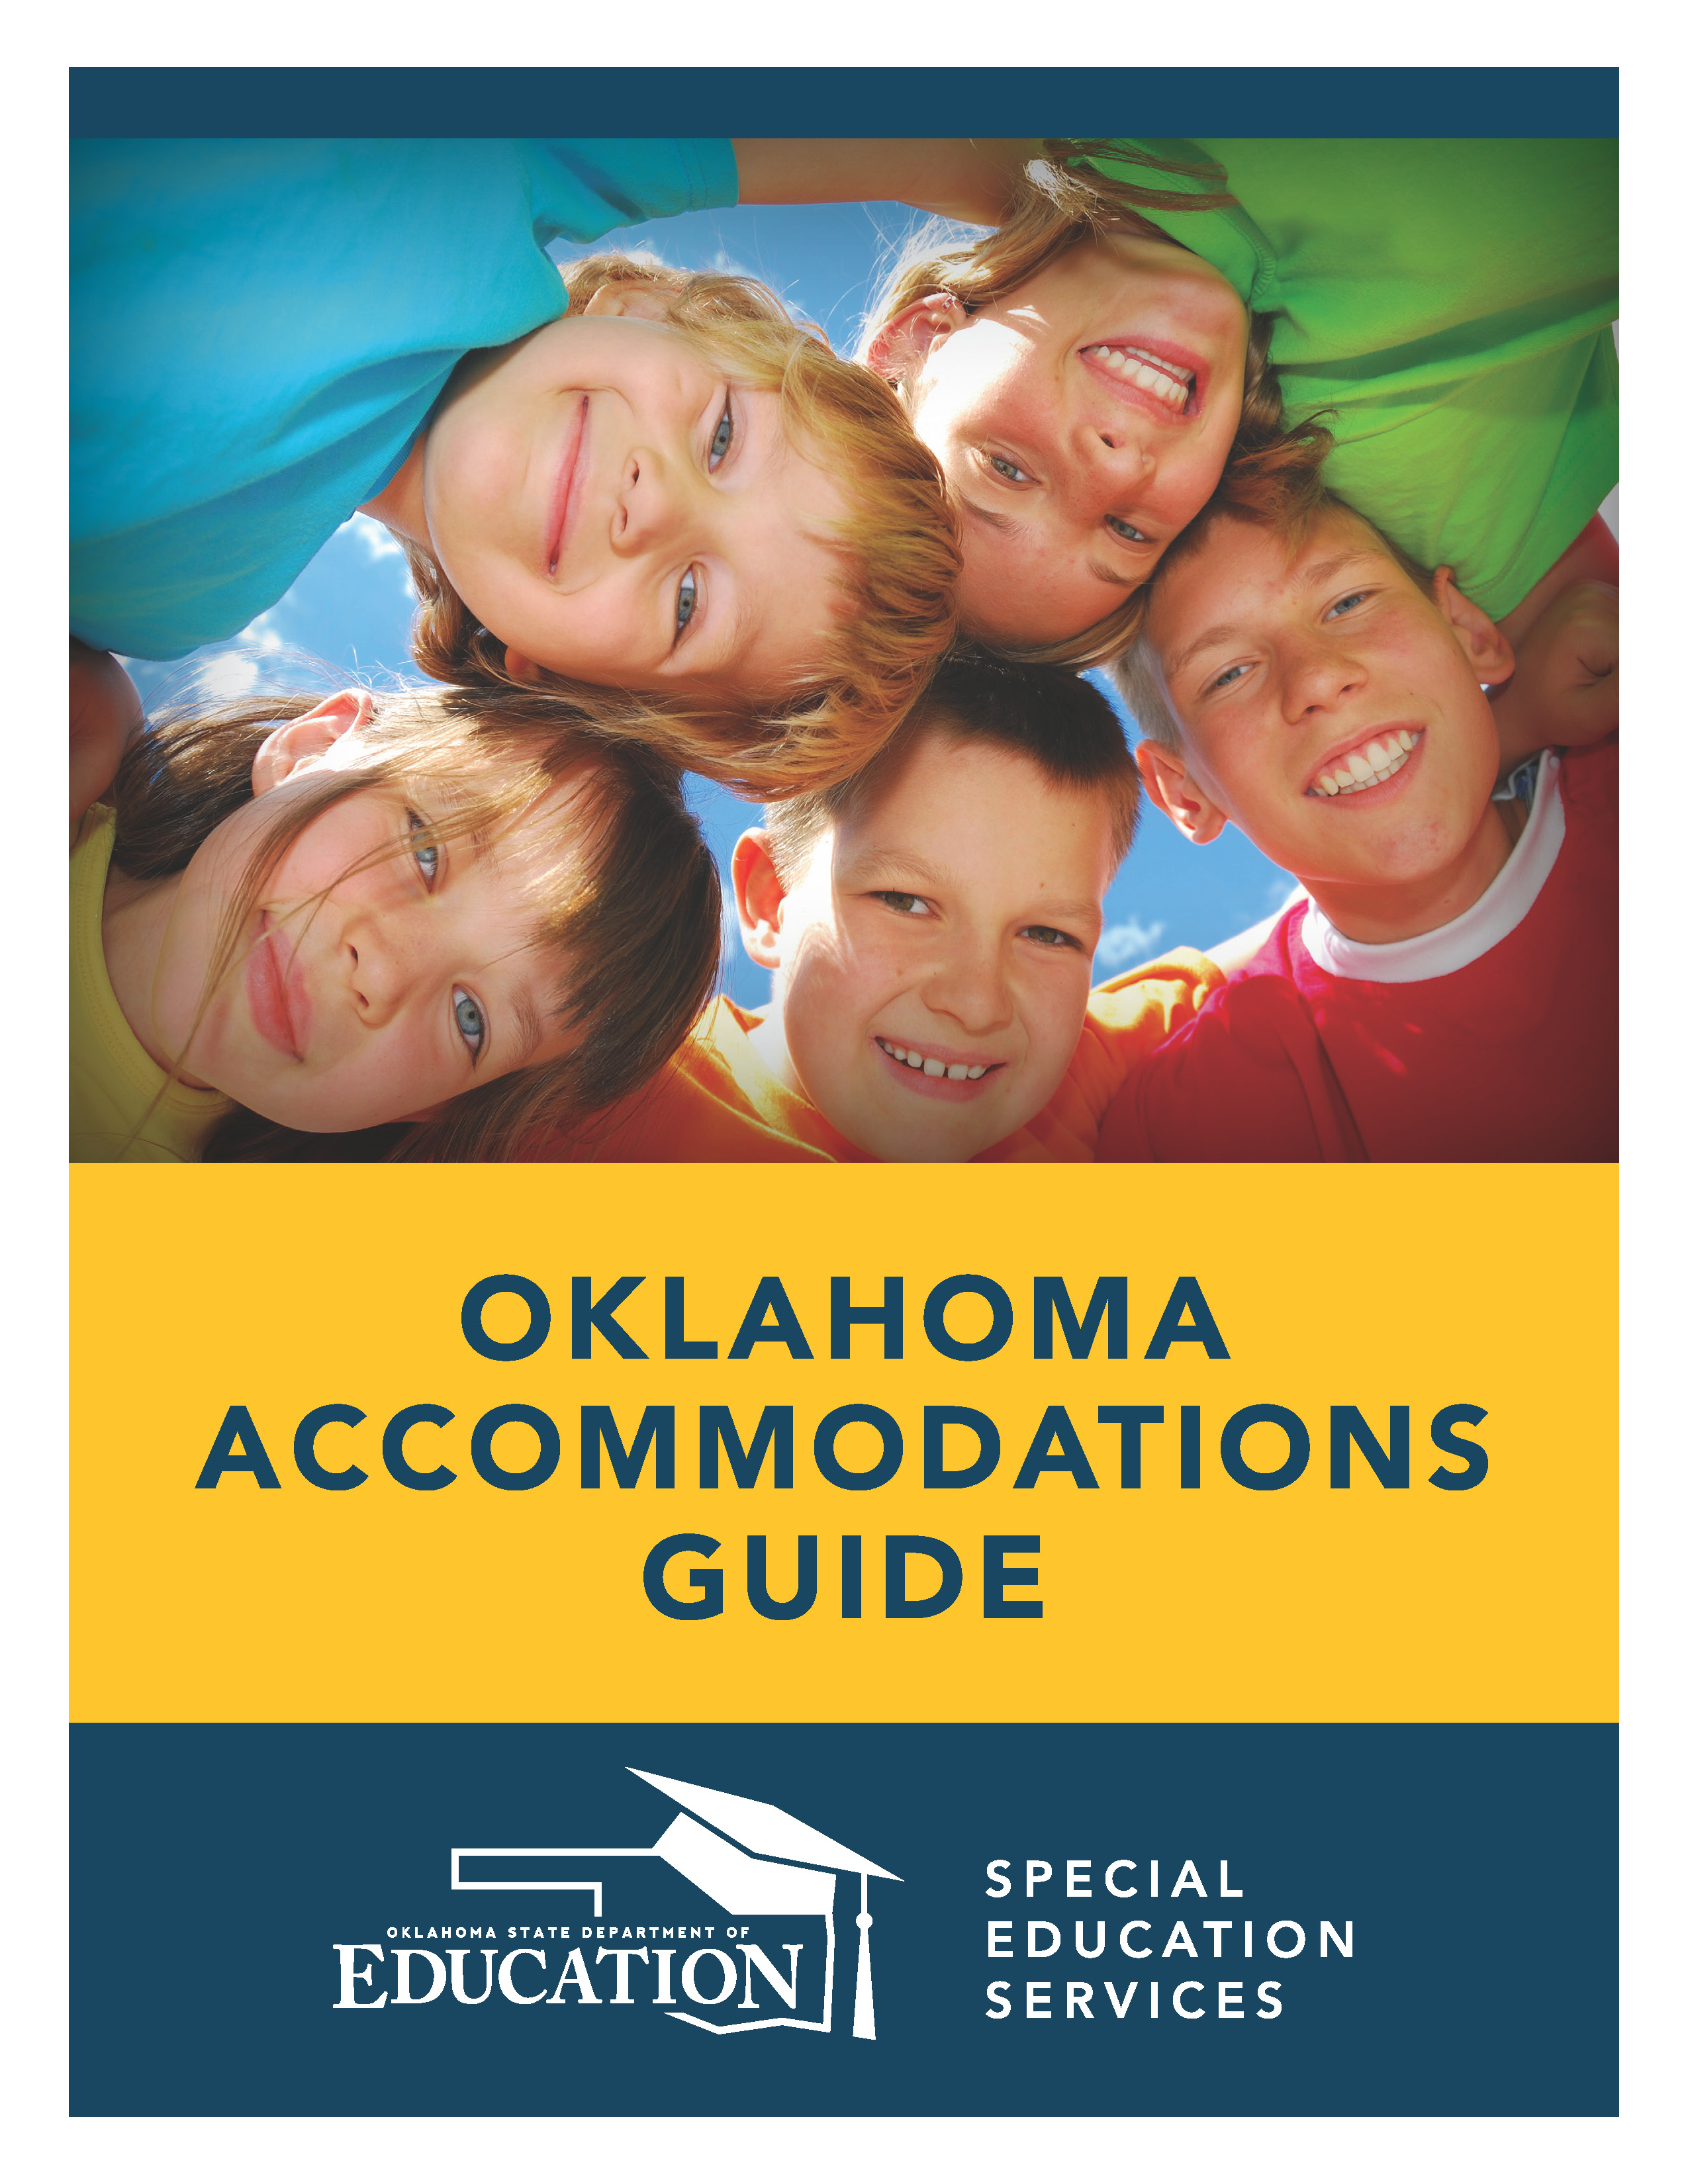 Oklahoma Accommodations Guide